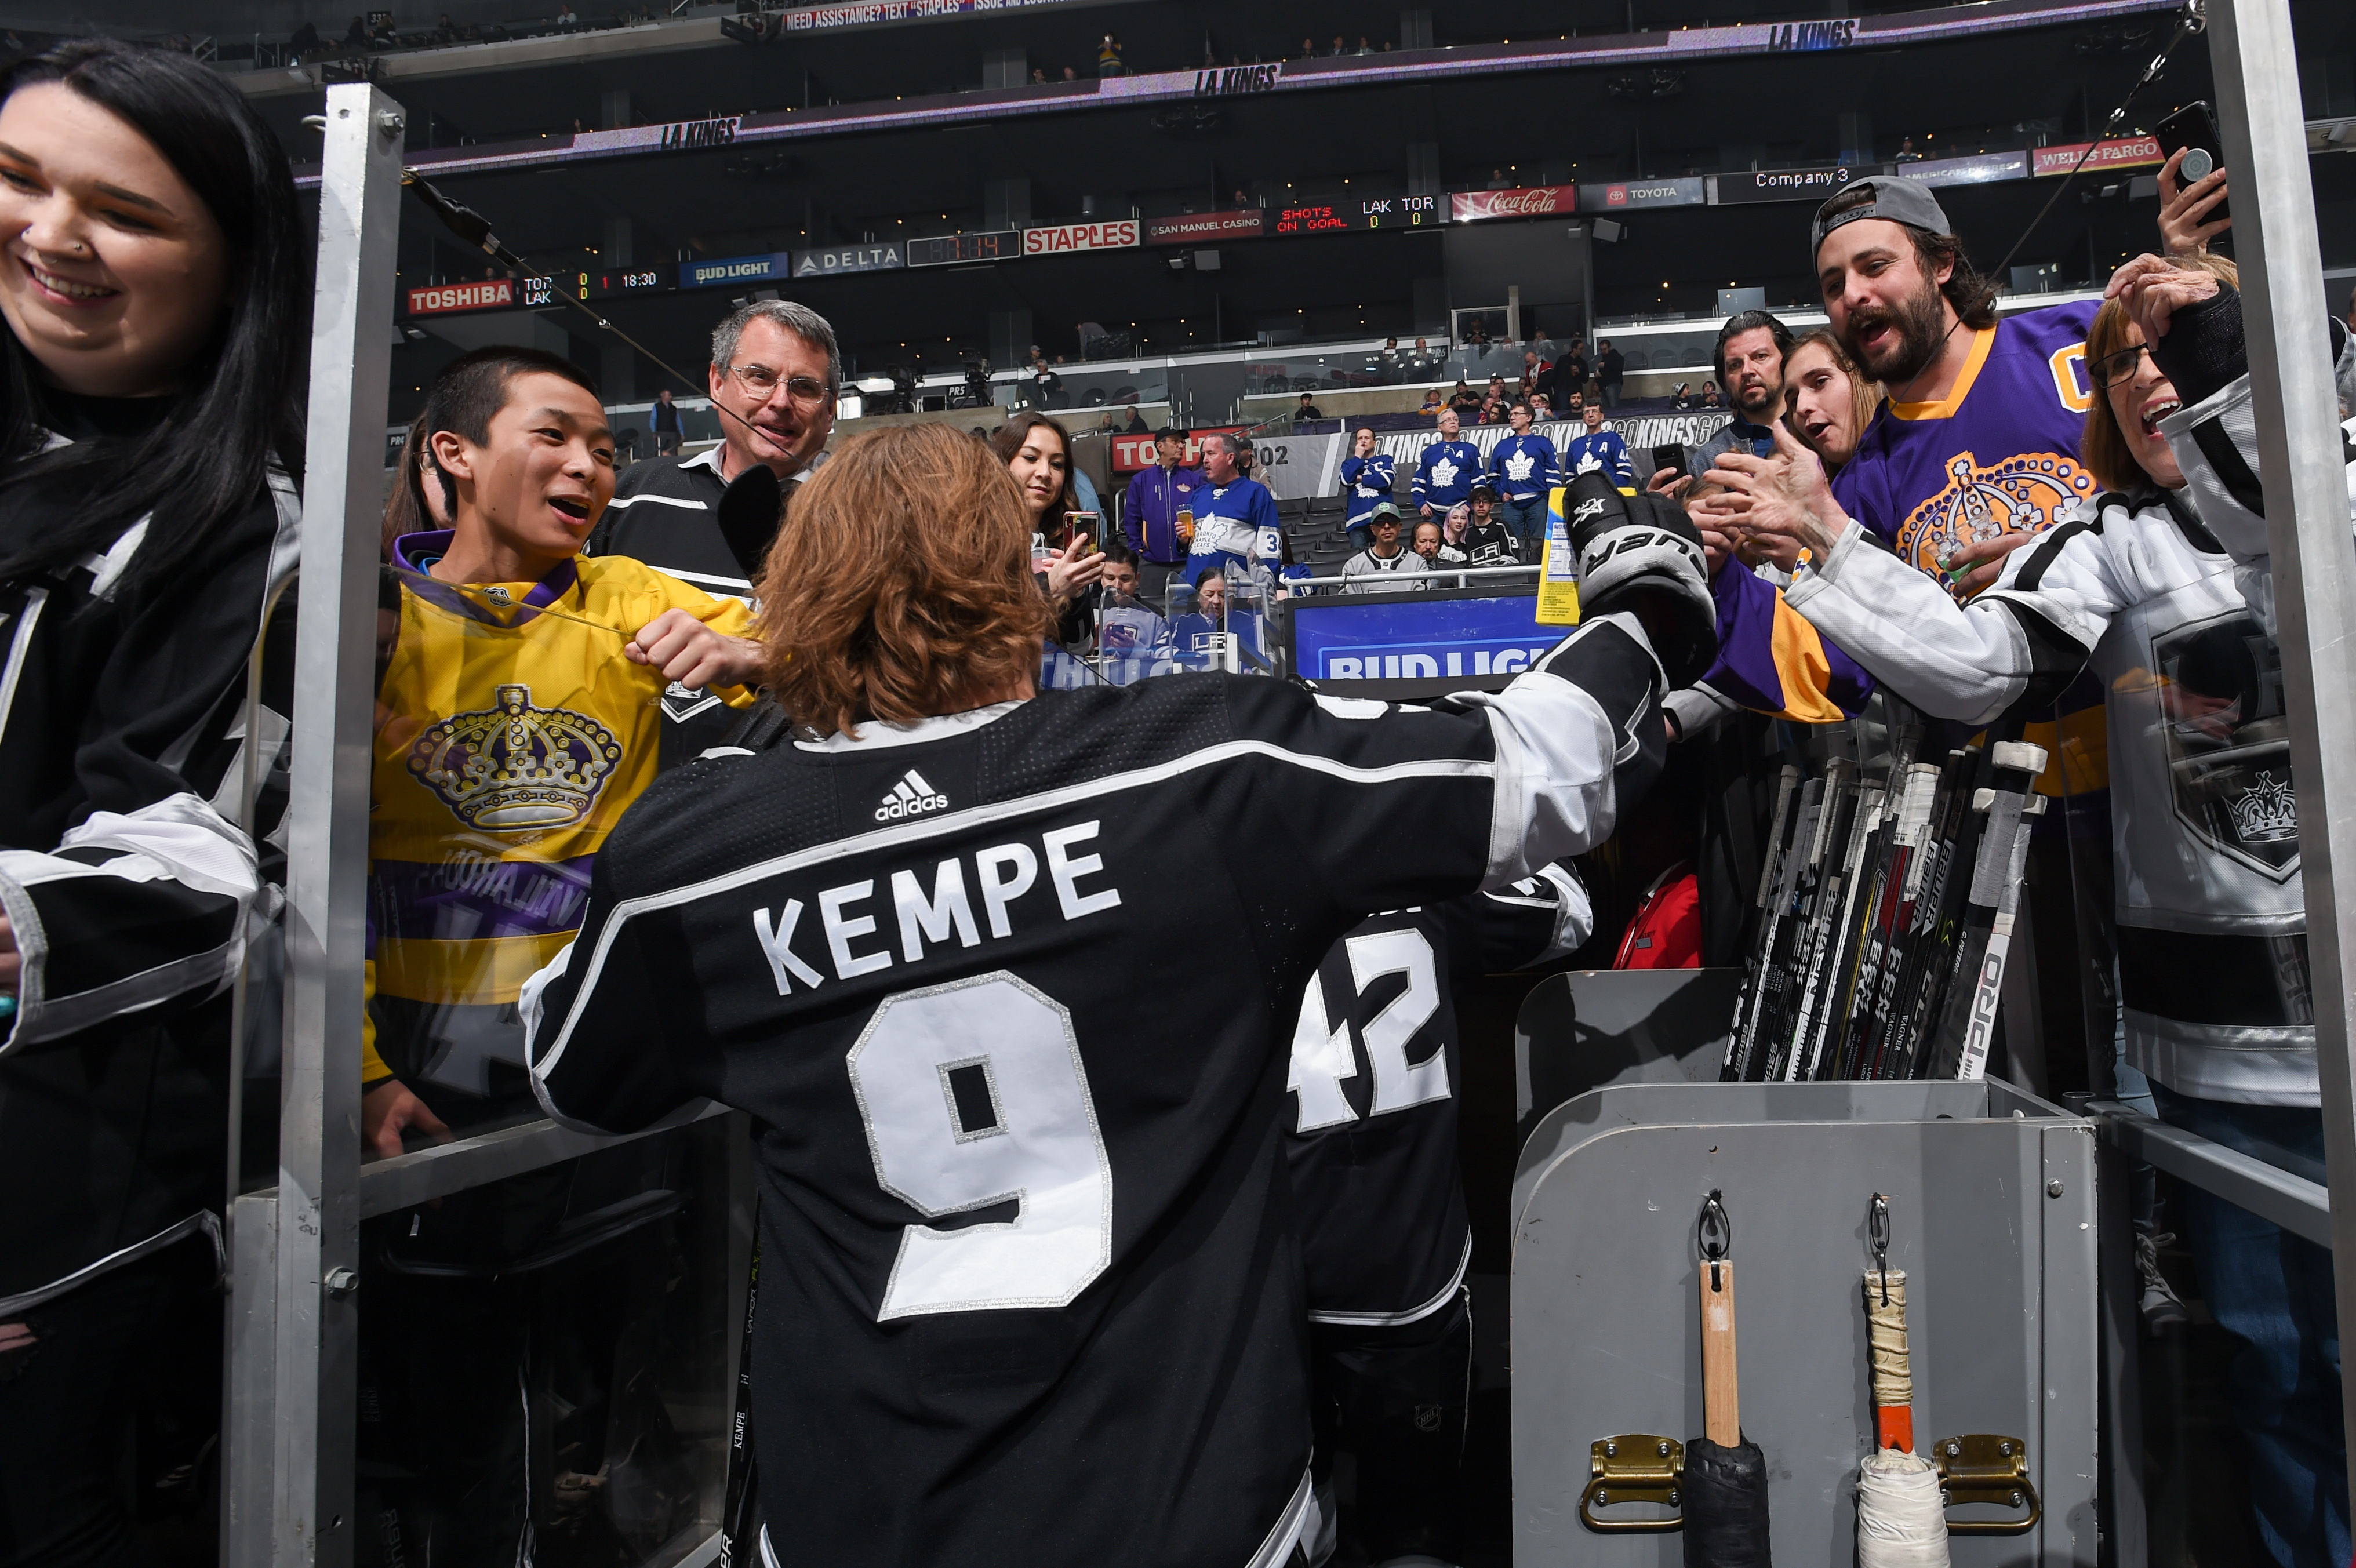 Adrian Kempe #9 of the Los Angeles Kings high fives fans during warm ups against the Toronto Maple Leafs at STAPLES Center on March 5, 2020 in Los Angeles, California.